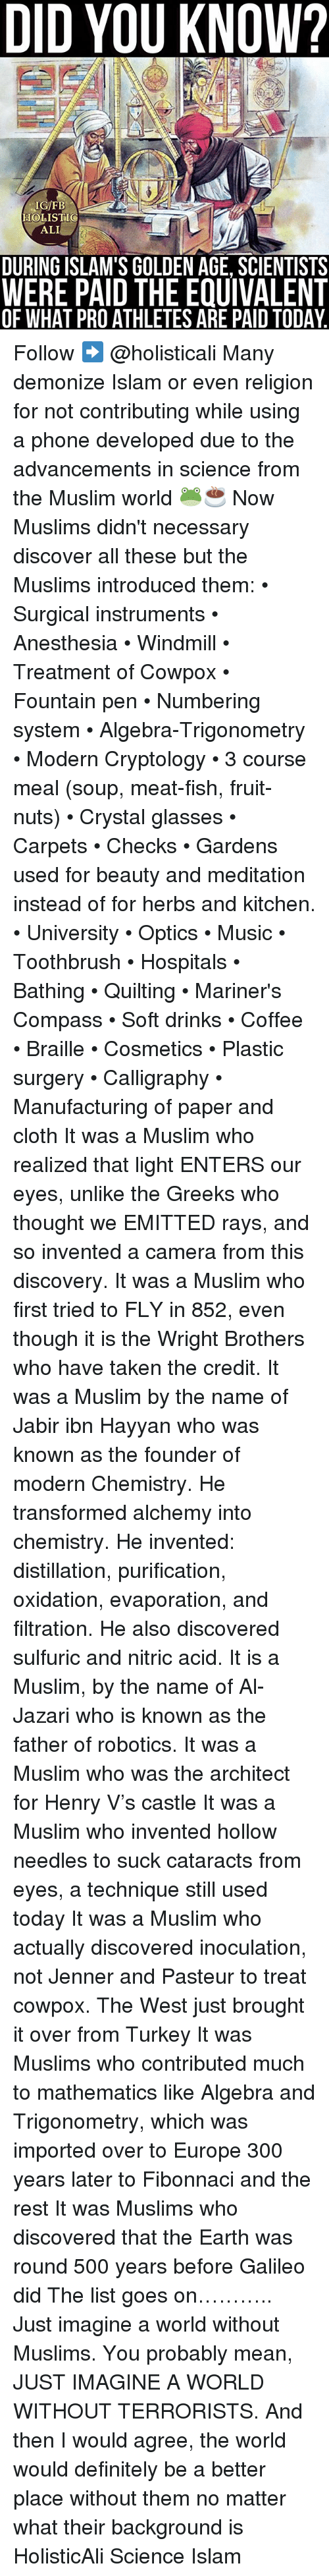 Ali, Definitely, and Memes: DID YOU KNOW?  IG/FB  HOLISTIG  ALI  DURING ISLAM'S GOLDEN AGE, SCIENTISTS  WERE PAID THE EQUIVALENT  OF WHAT PROATHLETES ARE PAID TODAY. Follow ➡️ @holisticali Many demonize Islam or even religion for not contributing while using a phone developed due to the advancements in science from the Muslim world 🐸☕️ Now Muslims didn't necessary discover all these but the Muslims introduced them: • Surgical instruments • Anesthesia • Windmill • Treatment of Cowpox • Fountain pen • Numbering system • Algebra-Trigonometry • Modern Cryptology • 3 course meal (soup, meat-fish, fruit-nuts) • Crystal glasses • Carpets • Checks • Gardens used for beauty and meditation instead of for herbs and kitchen. • University • Optics • Music • Toothbrush • Hospitals • Bathing • Quilting • Mariner's Compass • Soft drinks • Coffee • Braille • Cosmetics • Plastic surgery • Calligraphy • Manufacturing of paper and cloth It was a Muslim who realized that light ENTERS our eyes, unlike the Greeks who thought we EMITTED rays, and so invented a camera from this discovery. It was a Muslim who first tried to FLY in 852, even though it is the Wright Brothers who have taken the credit. It was a Muslim by the name of Jabir ibn Hayyan who was known as the founder of modern Chemistry. He transformed alchemy into chemistry. He invented: distillation, purification, oxidation, evaporation, and filtration. He also discovered sulfuric and nitric acid. It is a Muslim, by the name of Al-Jazari who is known as the father of robotics. It was a Muslim who was the architect for Henry V's castle It was a Muslim who invented hollow needles to suck cataracts from eyes, a technique still used today It was a Muslim who actually discovered inoculation, not Jenner and Pasteur to treat cowpox. The West just brought it over from Turkey It was Muslims who contributed much to mathematics like Algebra and Trigonometry, which was imported over to Europe 300 years later to Fibonnaci and the rest It was Mu